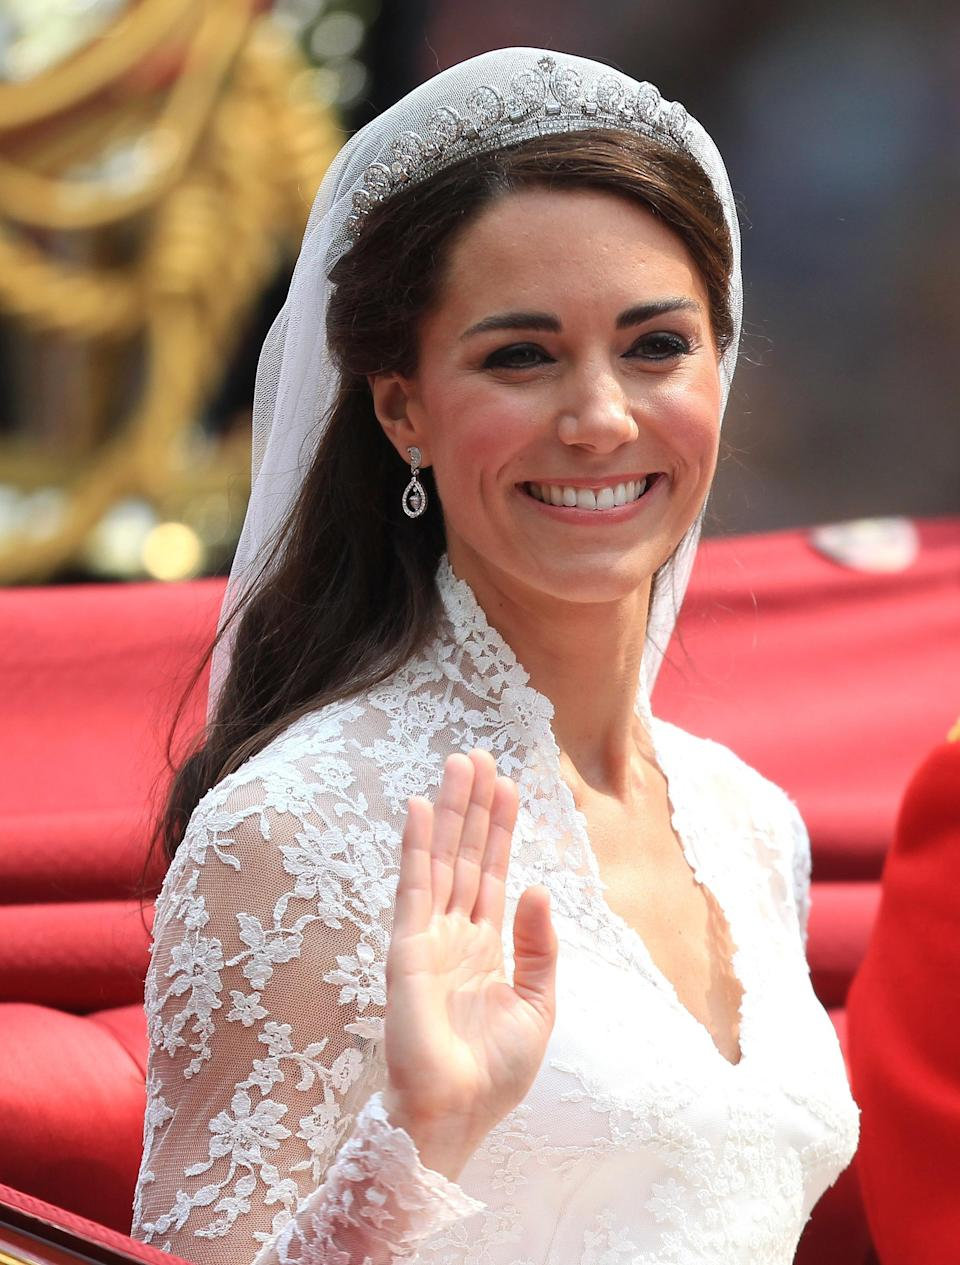 Kate wore the Cartier Halo tiara with her Alexander McQueen bridal gown on her wedding day in 2011. Made by Cartier in 1936, the Halo tiara was an anniversary present from King George VI to the Queen Mother. She passed it down to her daughter the Queen on her 18th birthday (PA)